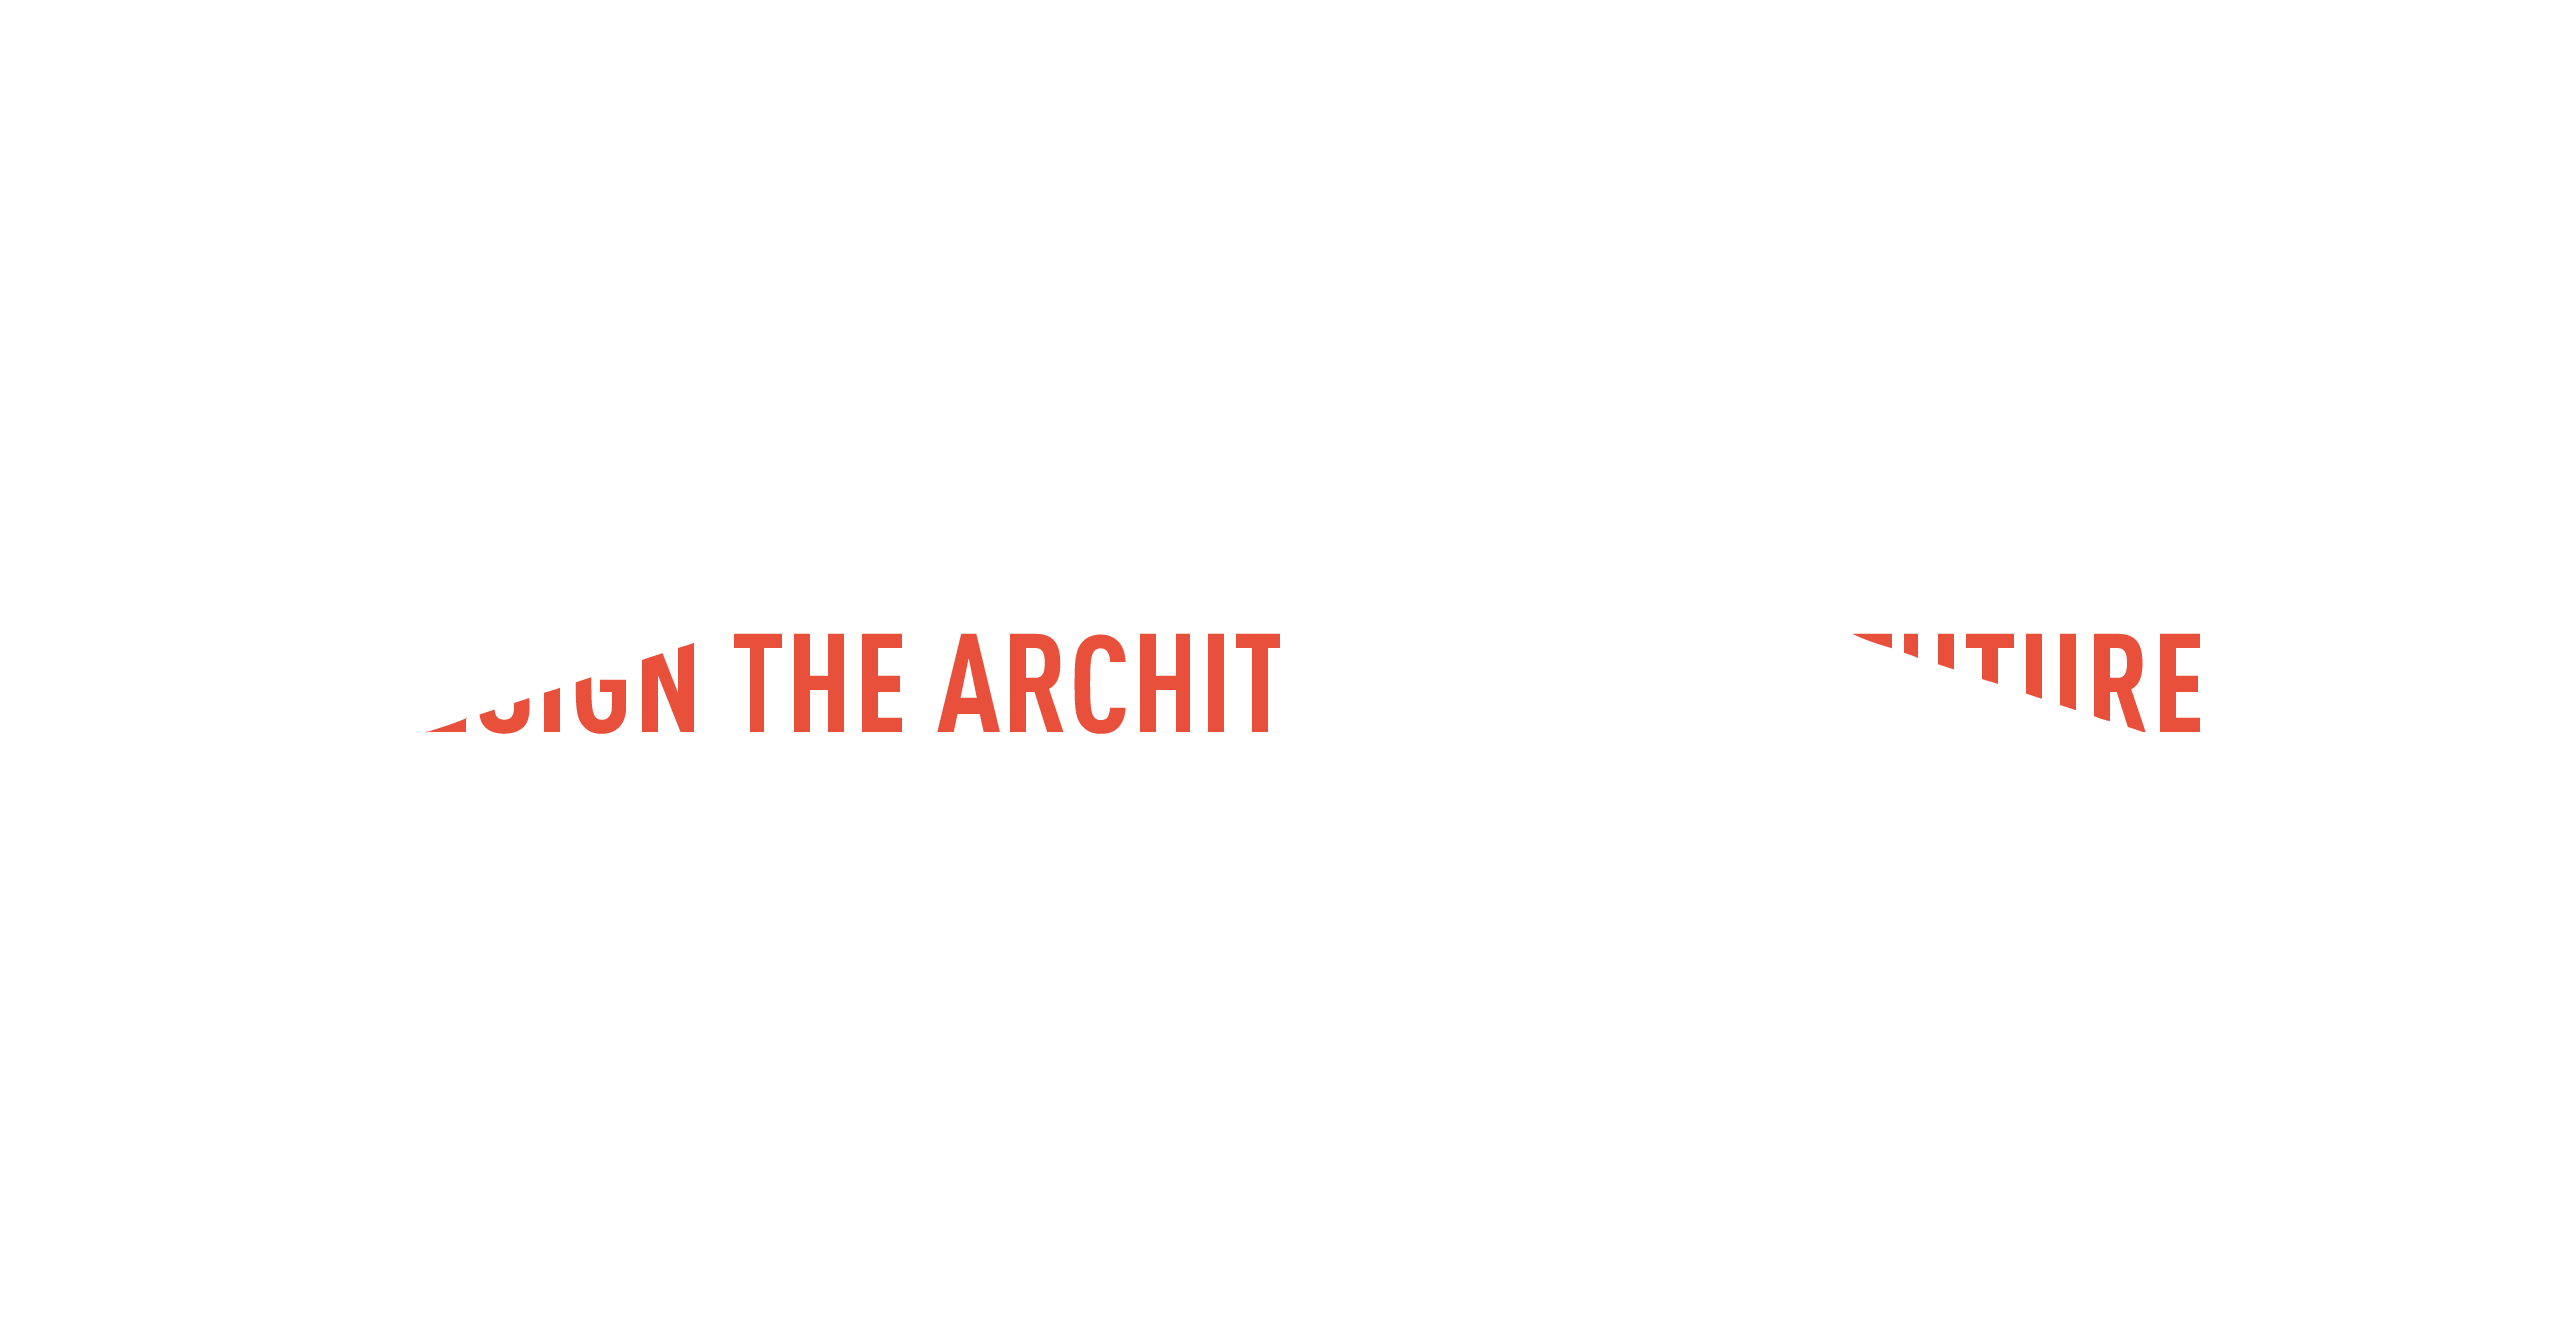 Design the Future Architect